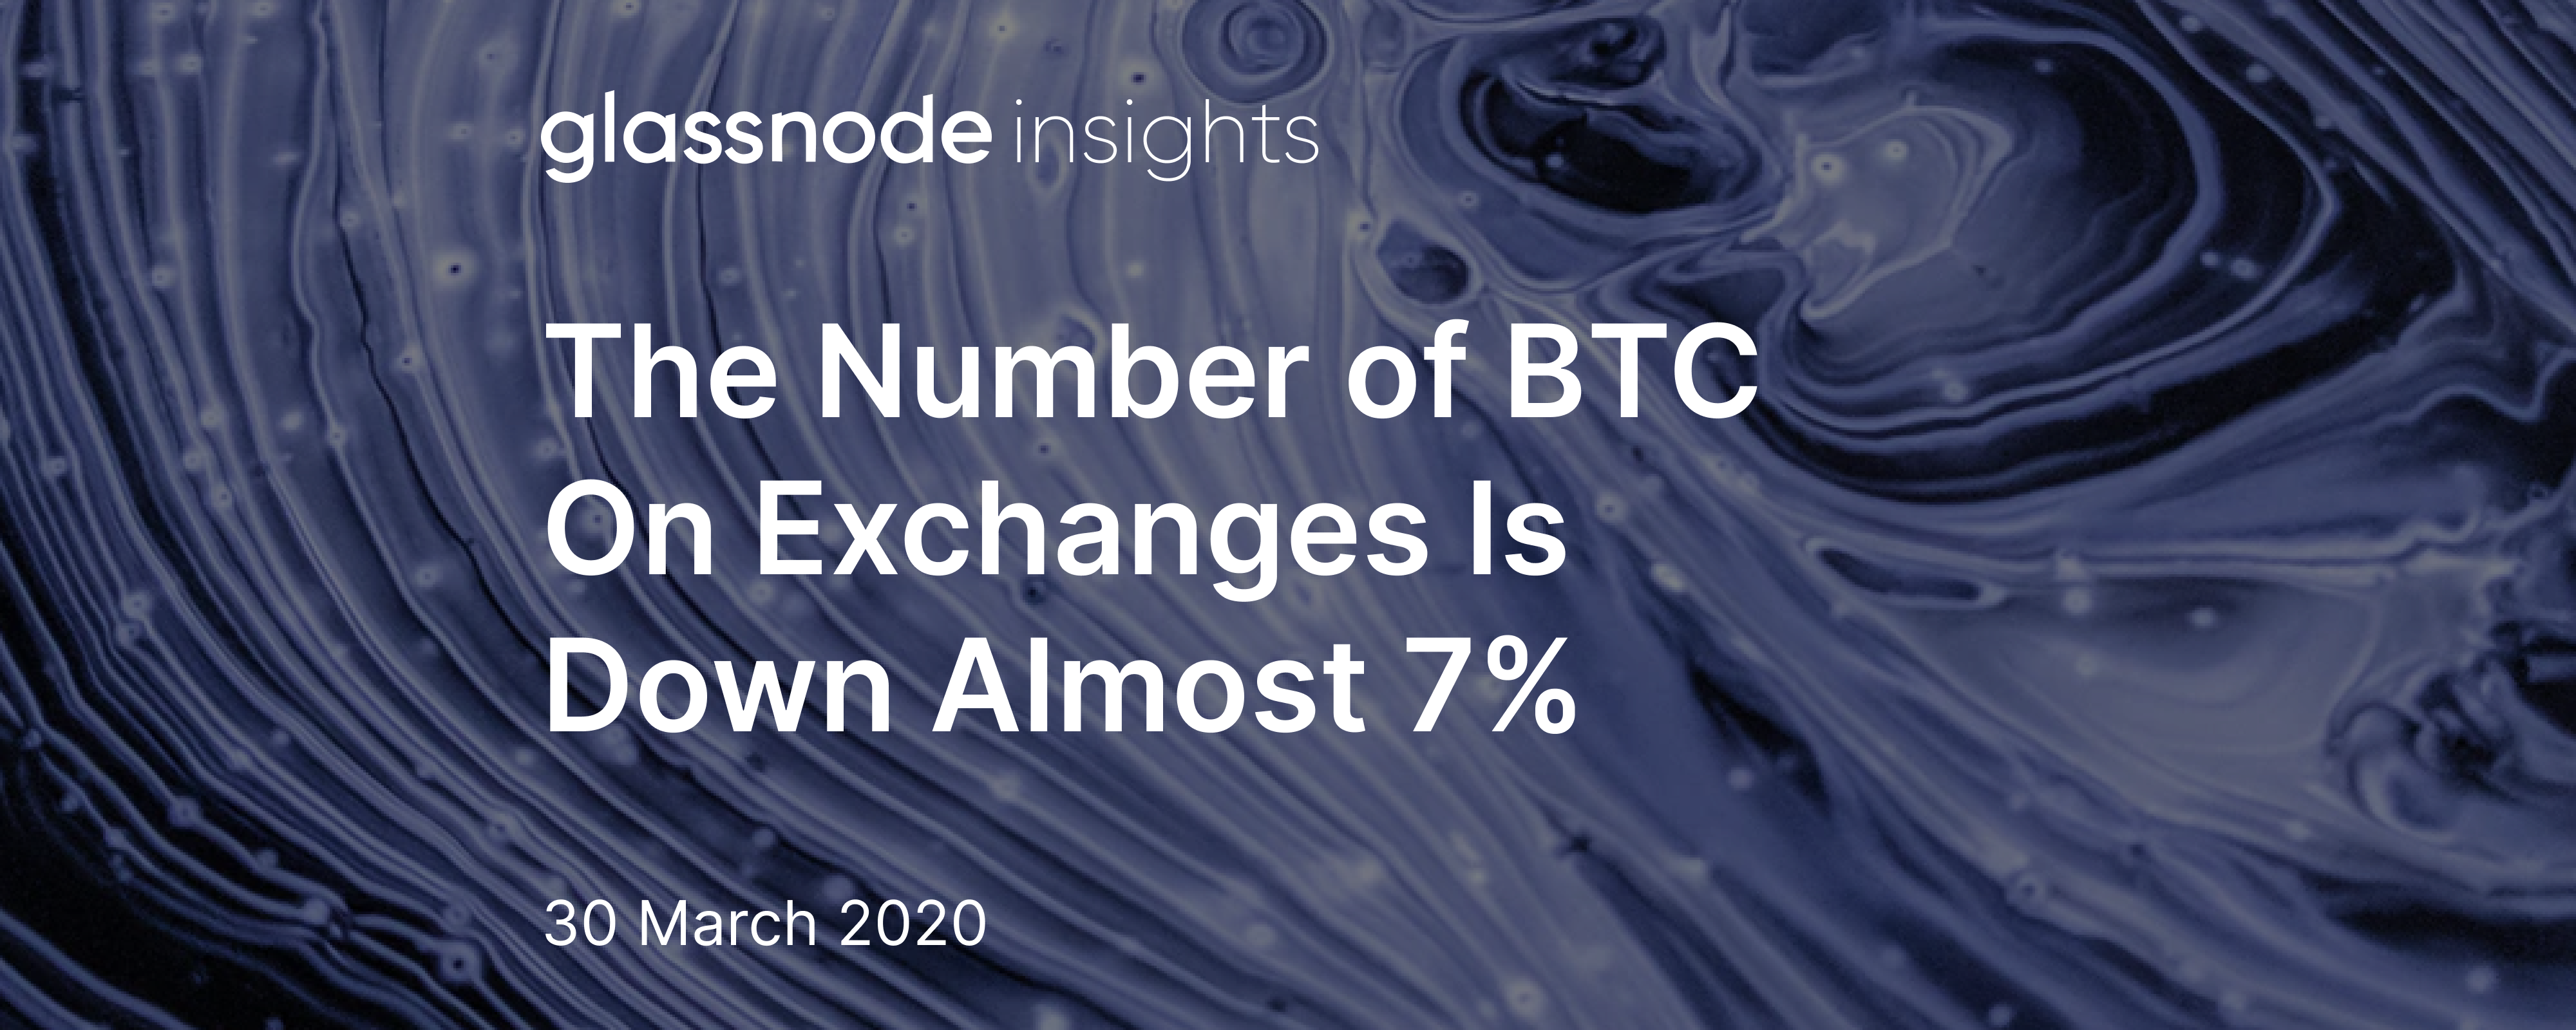 The Number of BTC On Exchanges Is Down Almost 7%